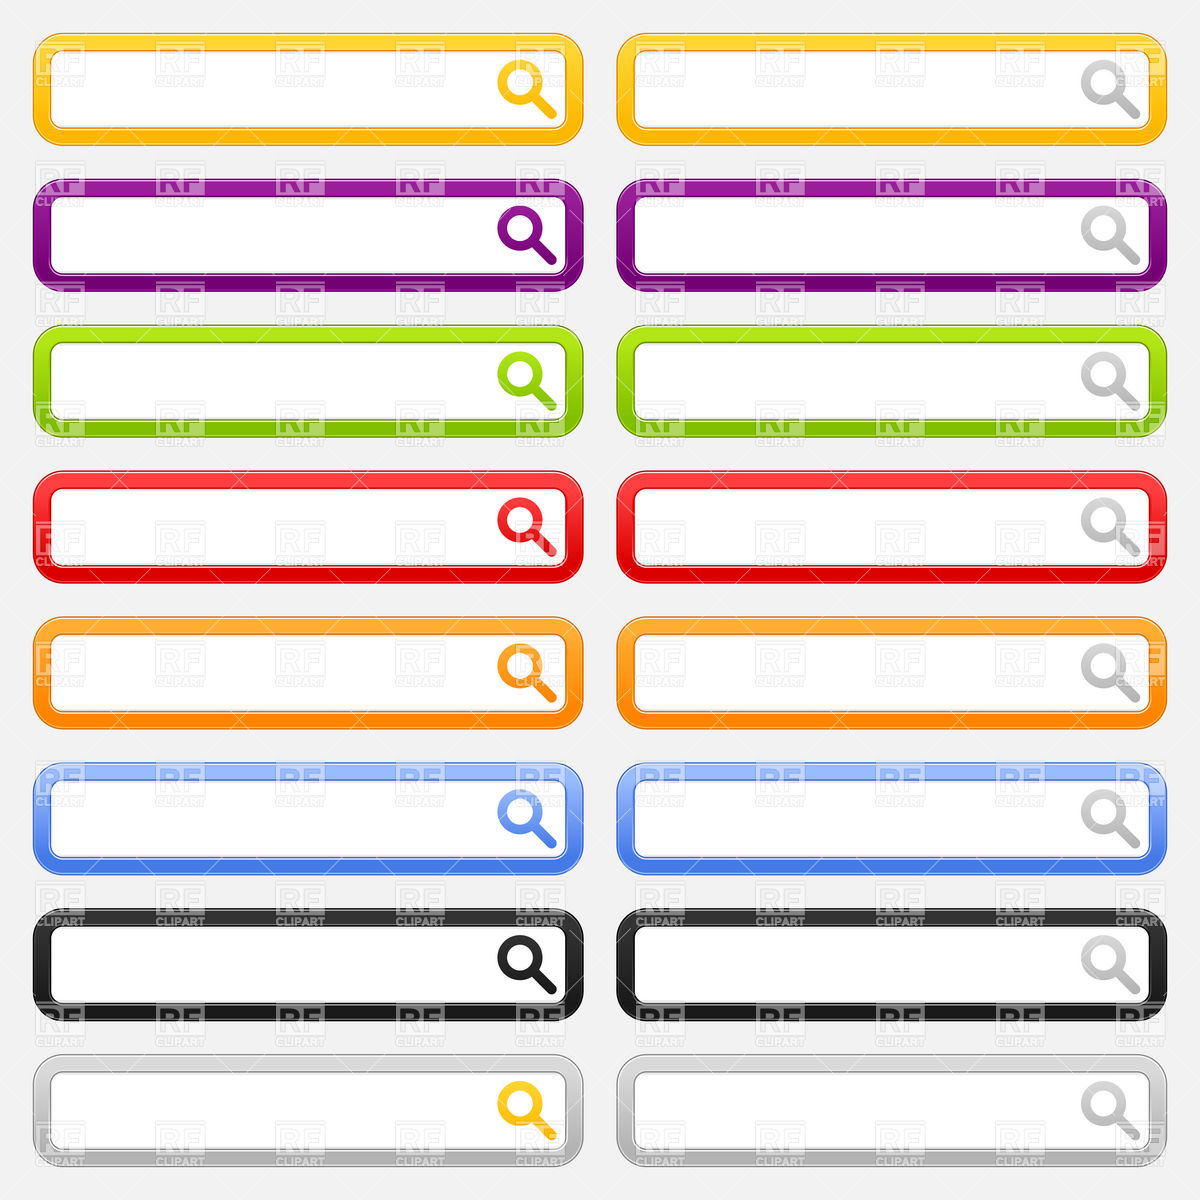 Search bar clipart clip art royalty free Clip Art for Free Search Bar – Clipart Free Download clip art royalty free